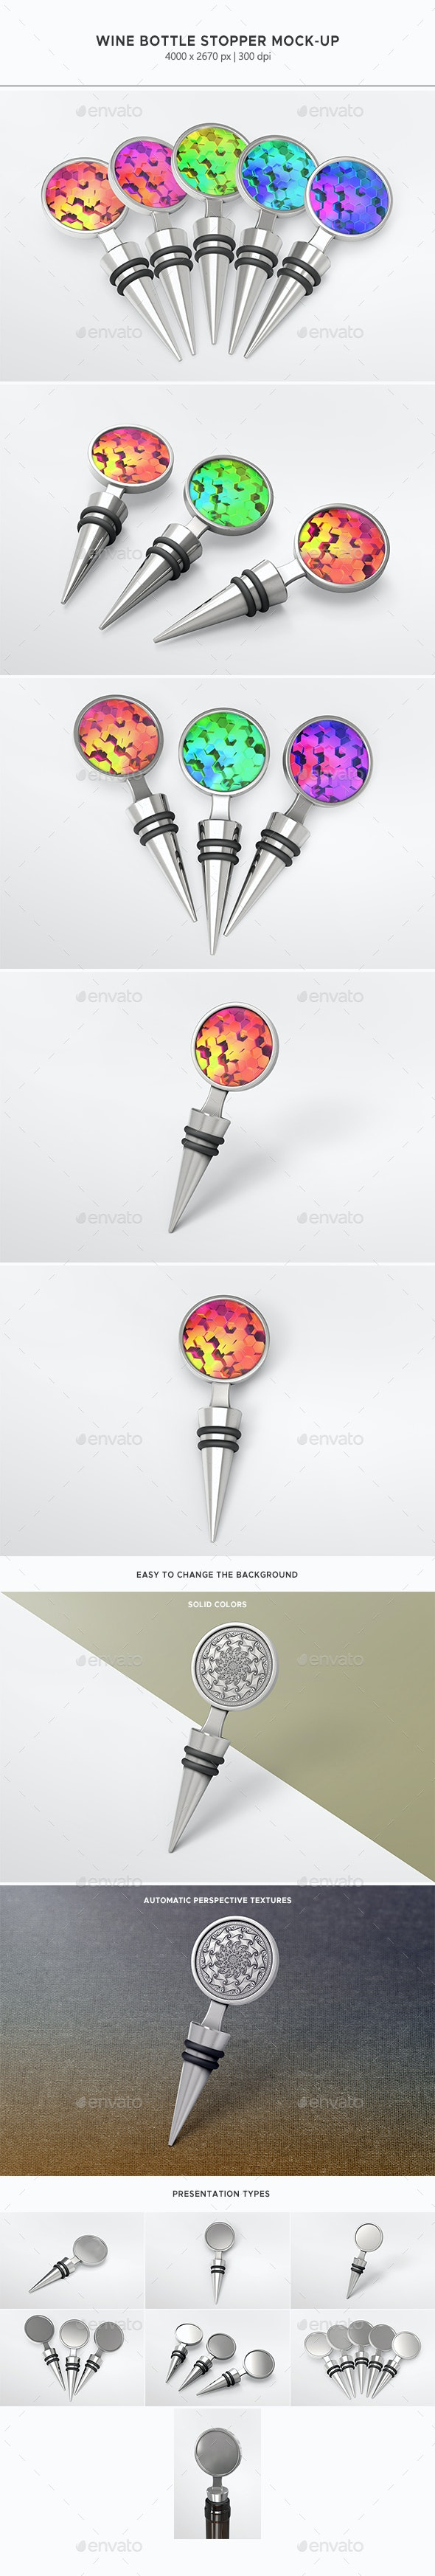 Wine Bottle Stopper Mock-up - Food and Drink Packaging